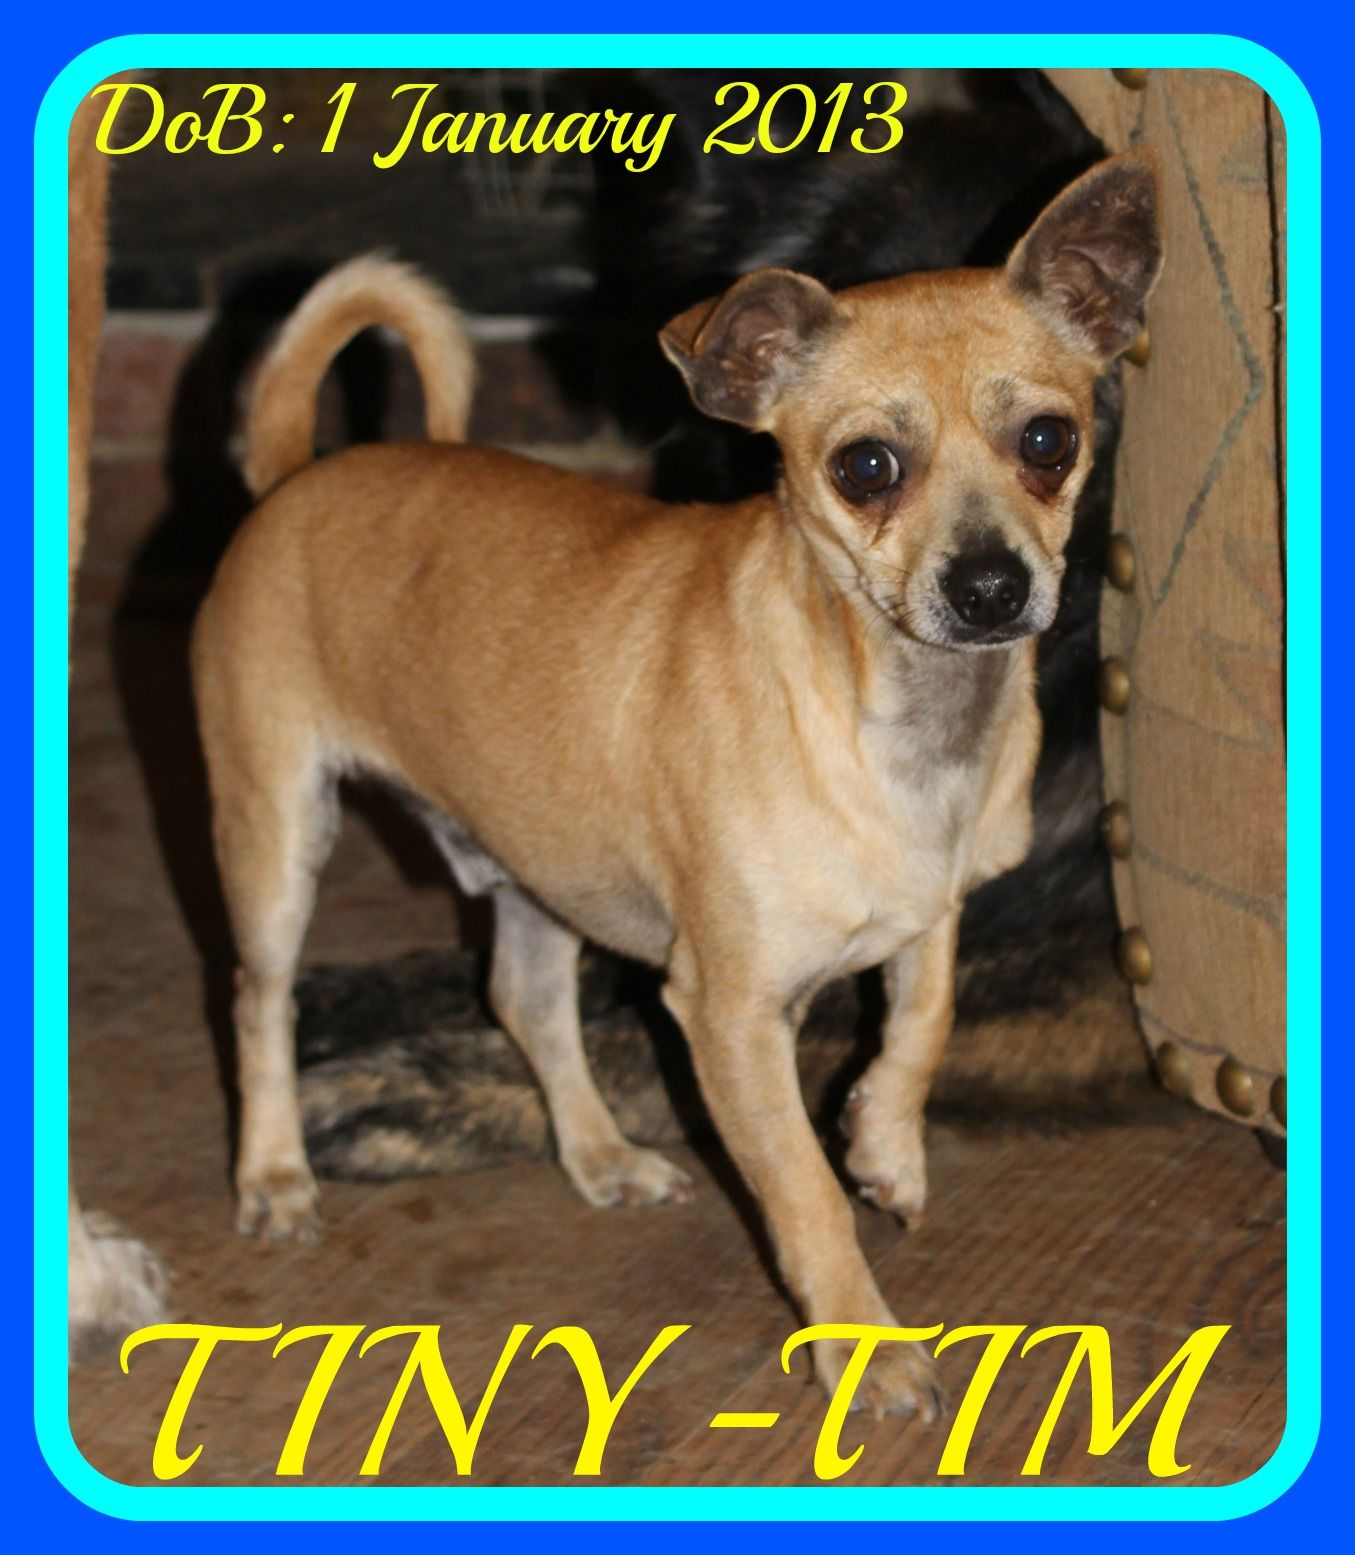 Chihuahua dog for Adoption in Sebec, ME. ADN500763 on